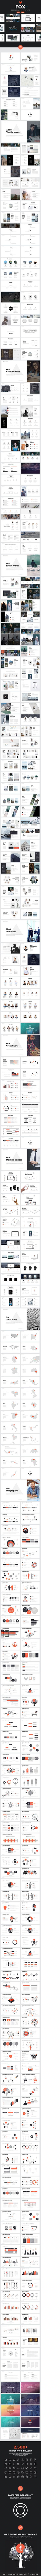 Fox - Ultimate Google Slides Template  • Only available here ➝ http://graphicriver.net/item/fox-ultimate-google-slides-template/16442759?ref=pxcr